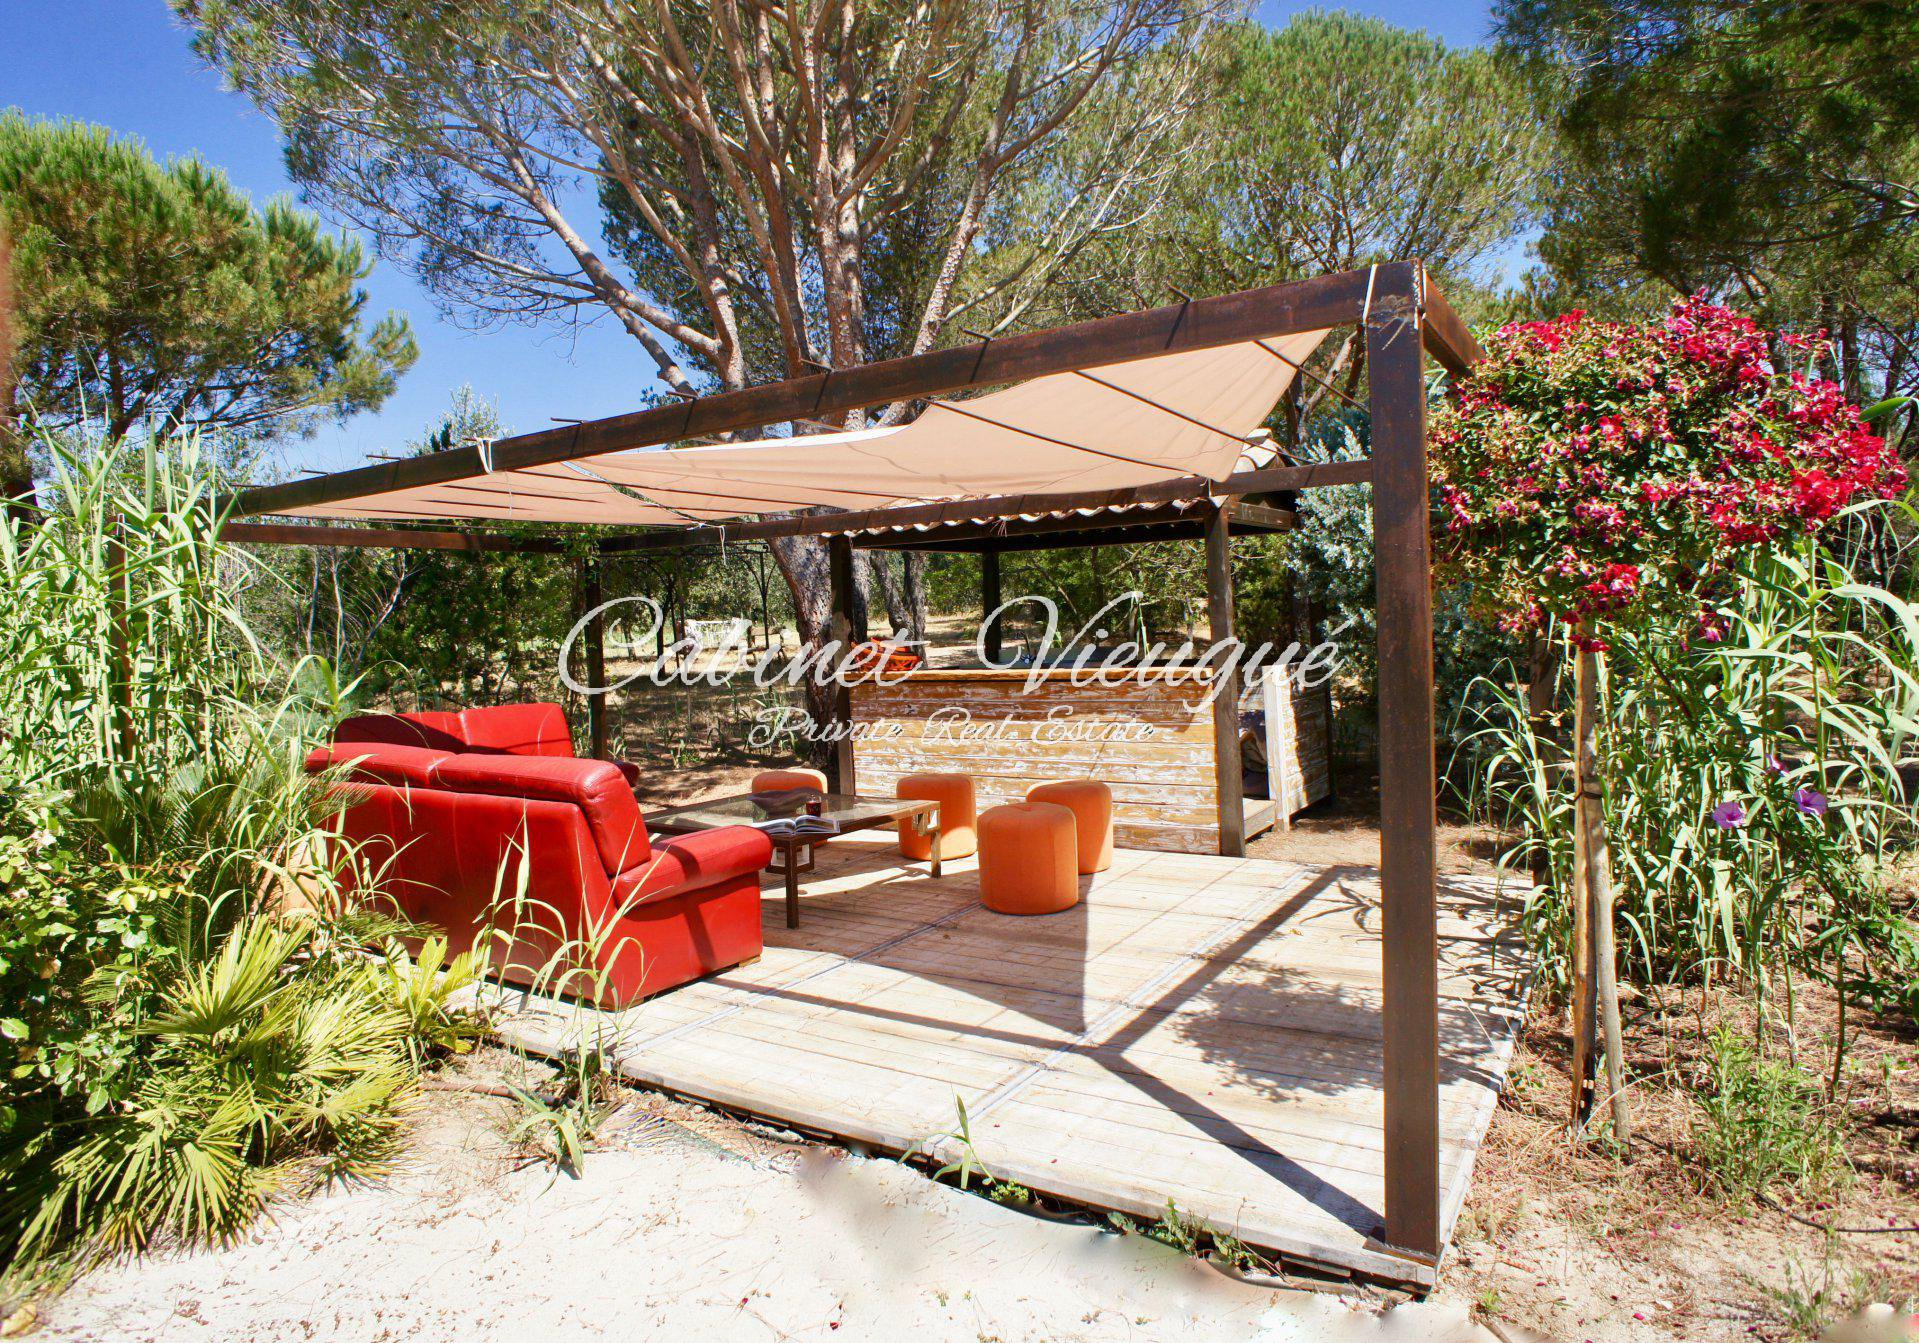 High-end service for this property with green surroundings and close to beaches